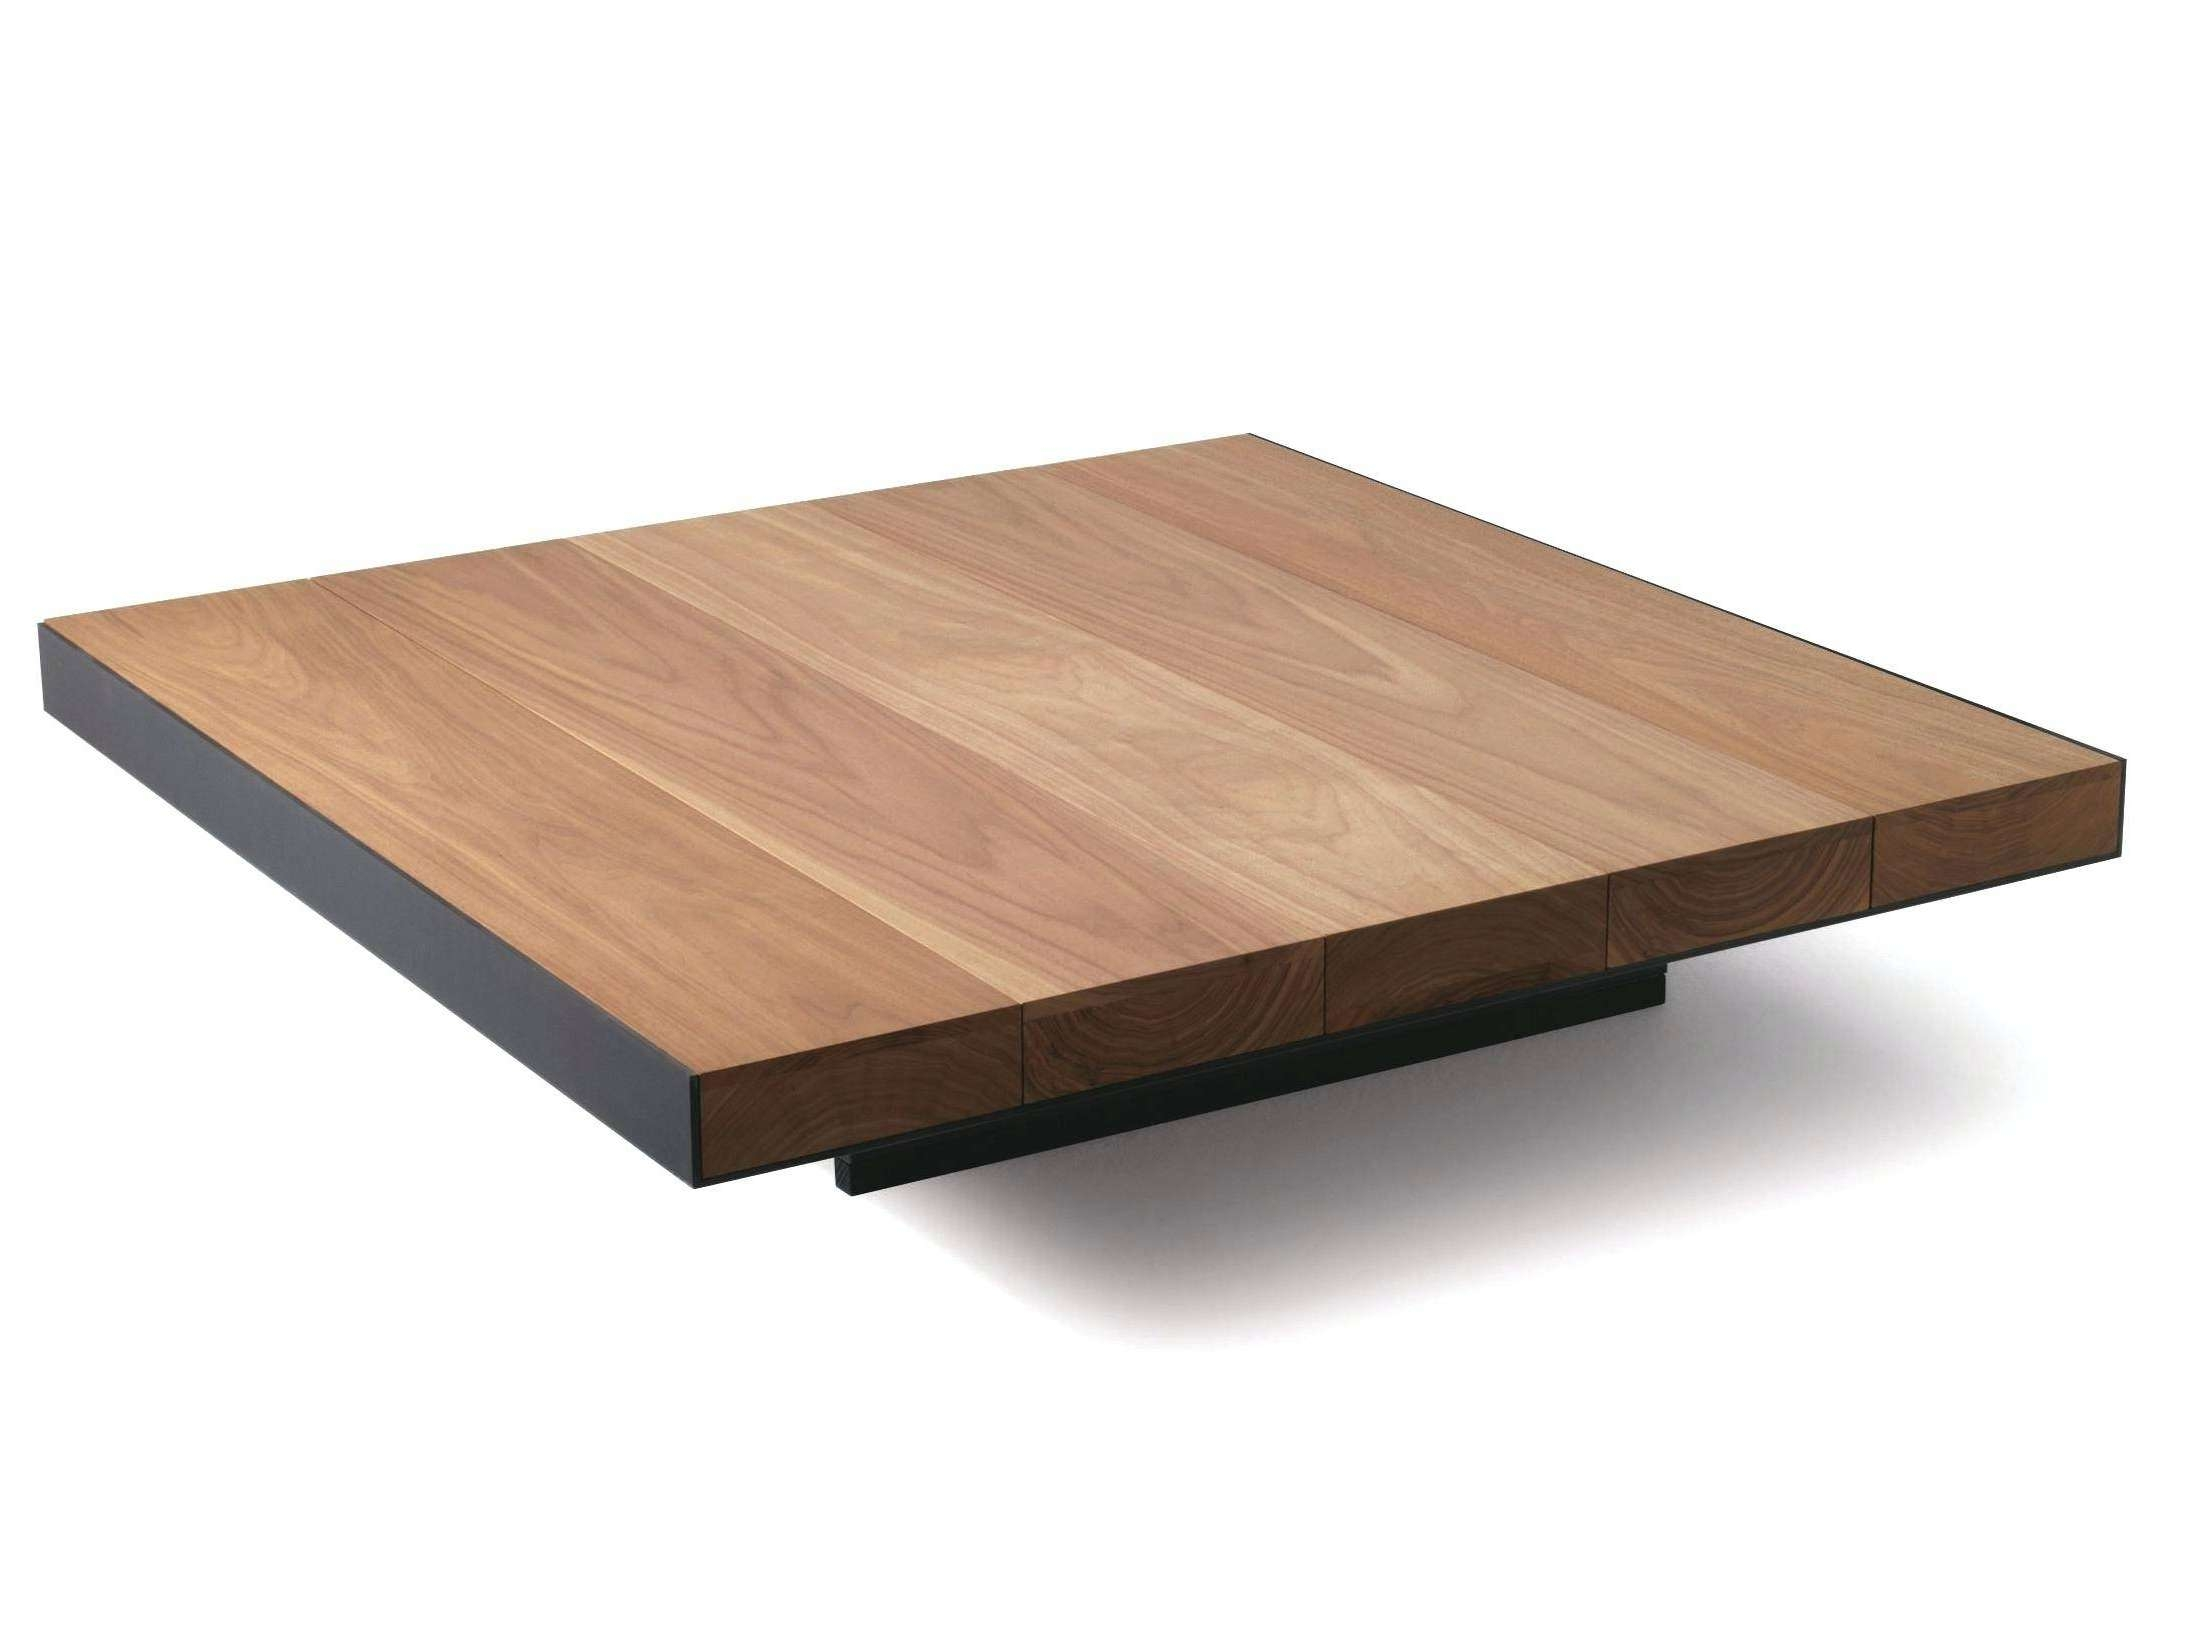 Newest Large Low Coffee Tables For Coffee Tables : Low Large Coffee Table Tables Marvelous Images (View 5 of 20)